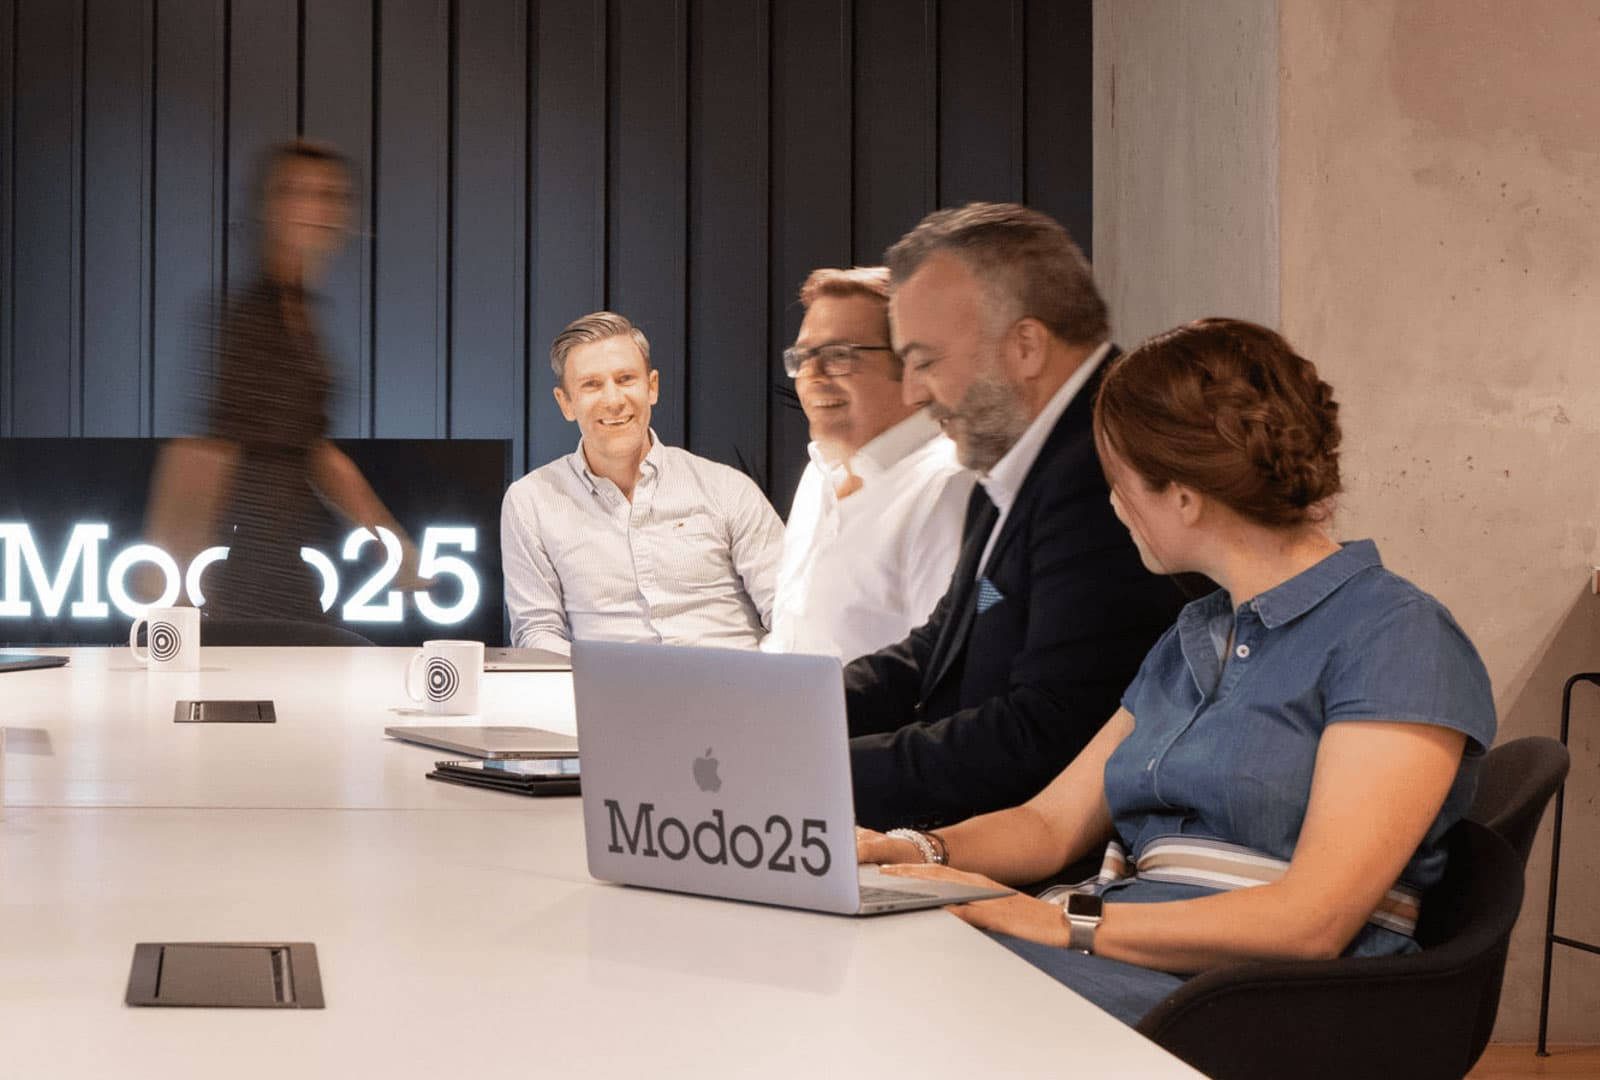 Training & Digital Strategy - Modo25